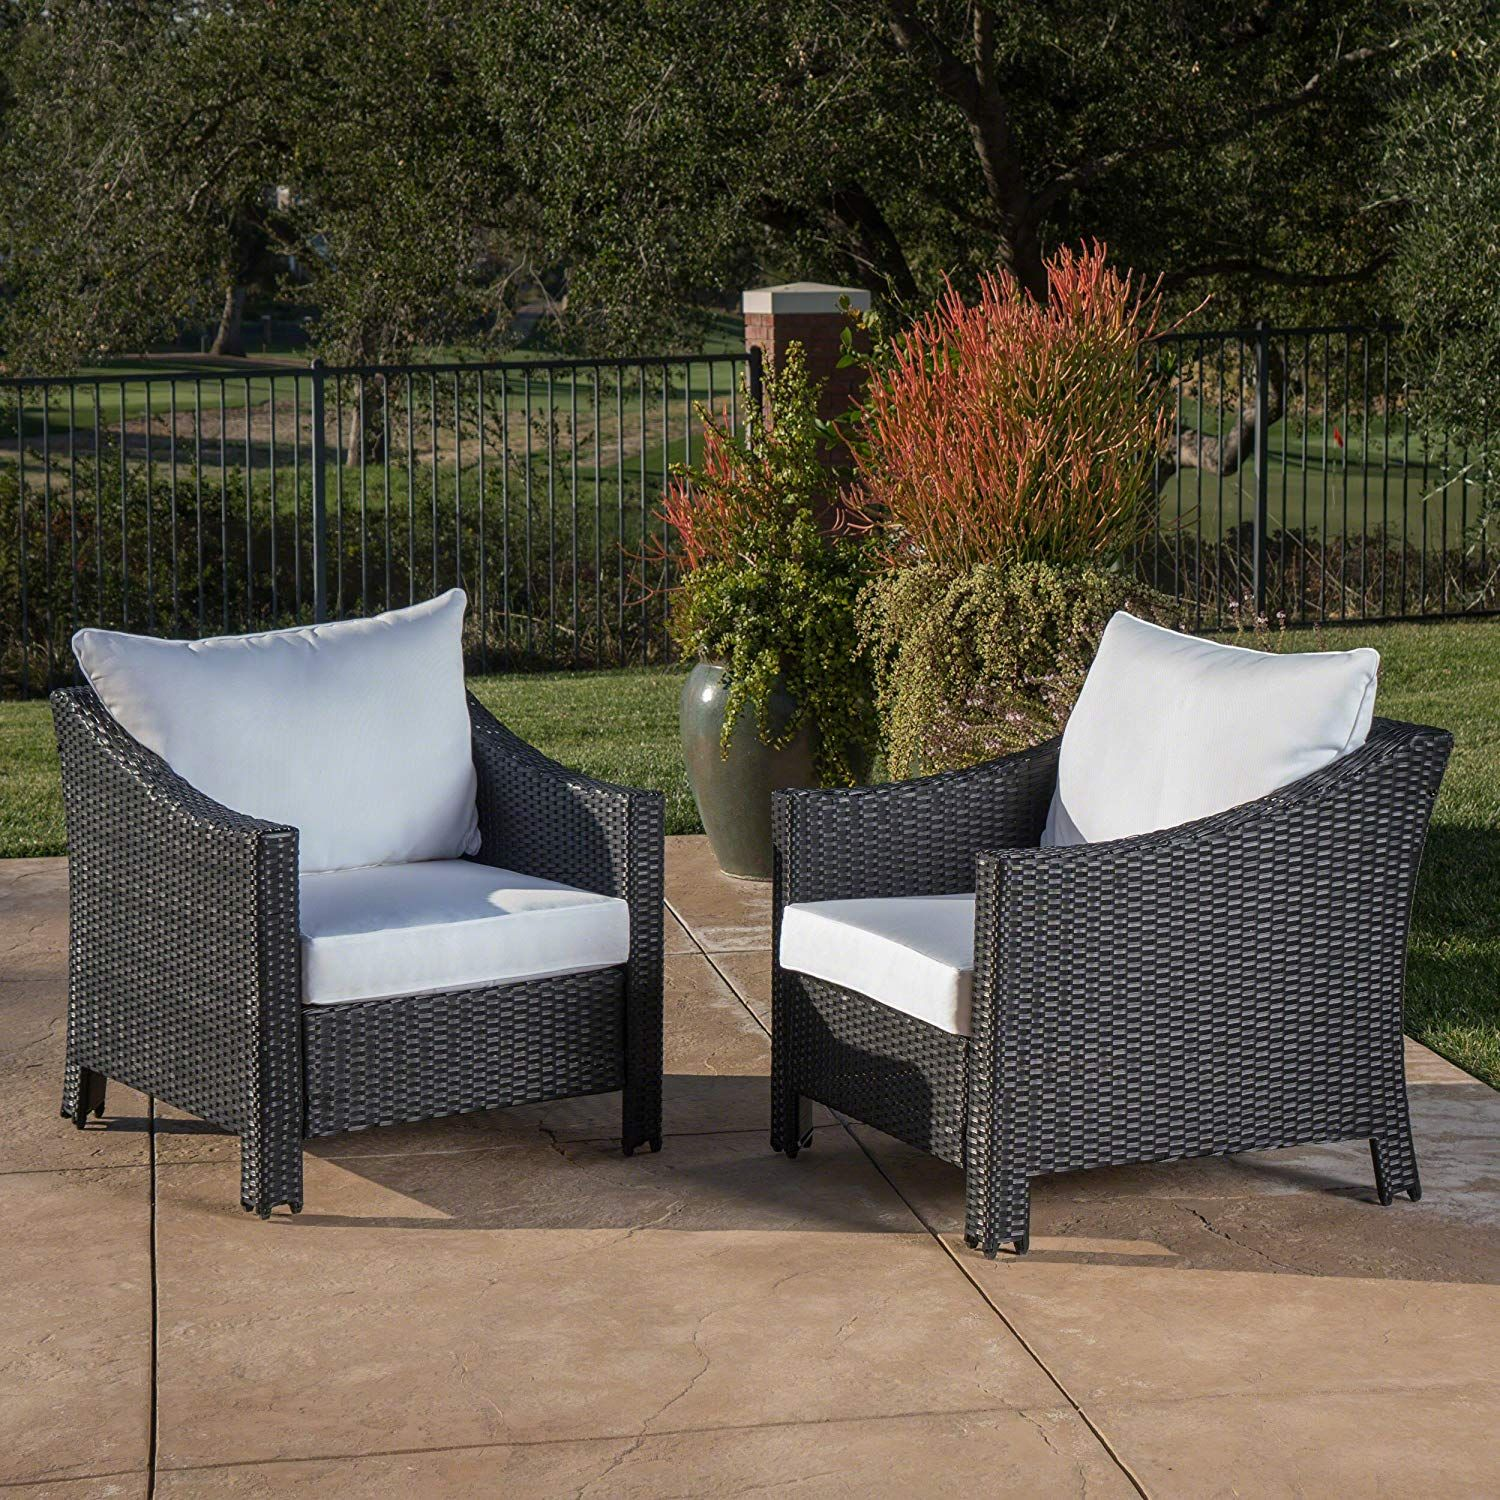 Great Deal Furniture Stonewell Outdoor Black Wicker Club Chairs With White Water Resistant Cushions Wicker Patio Chairs Outdoor Wicker Patio Chairs